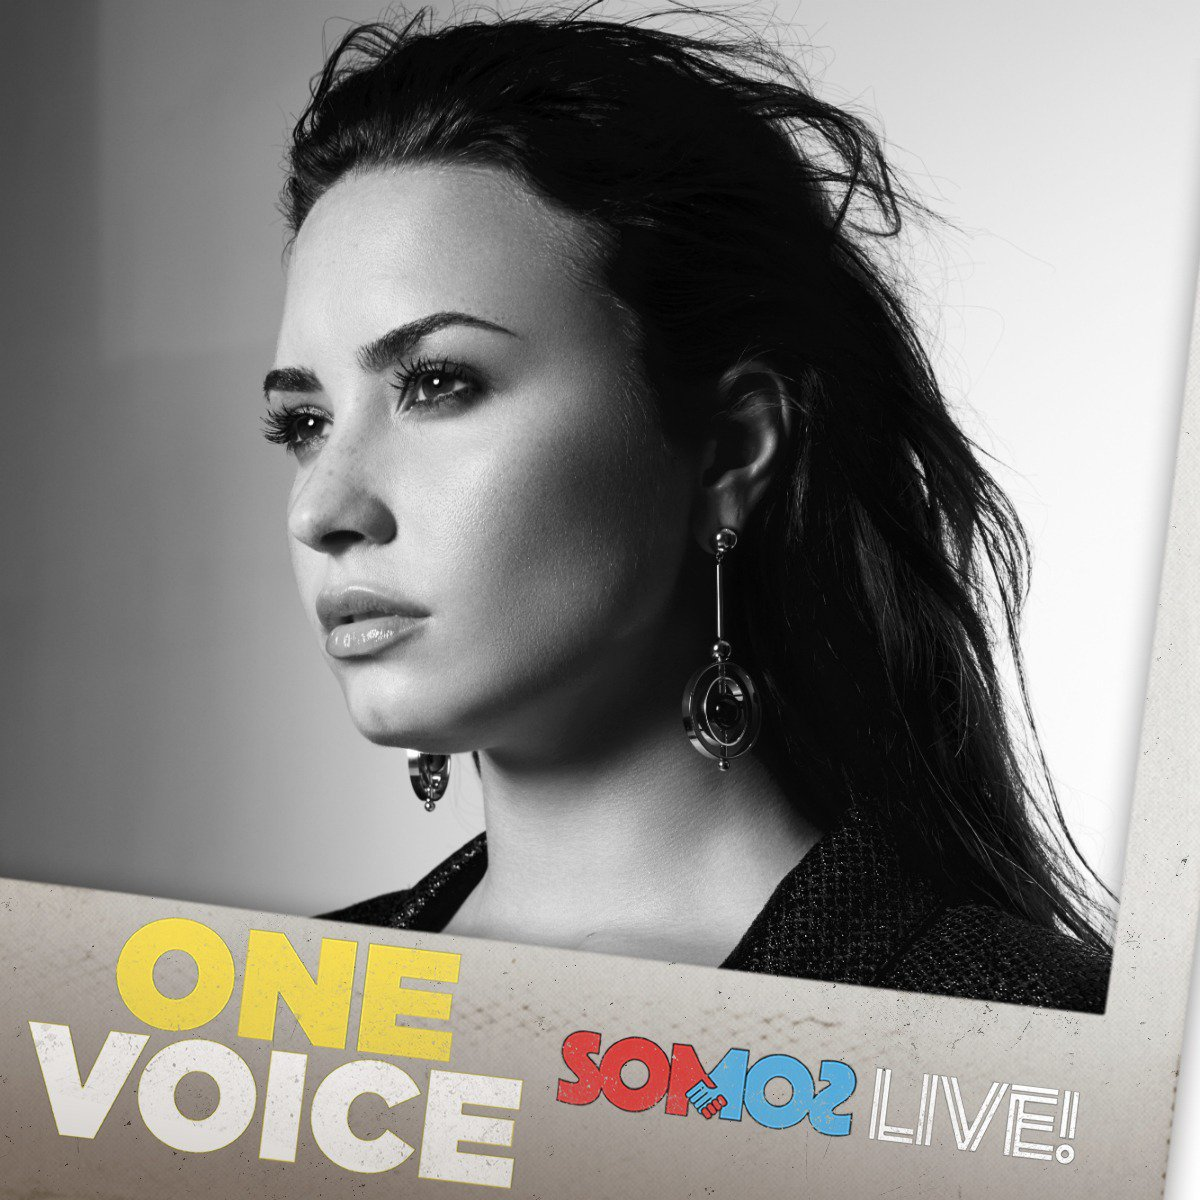 Performing tonight at #OneVoice: Somos Live to support relief efforts ❤️ Watch at 8/7c on @Telemundo @Univision & 10/9c on NBC #SomosUnaVoz